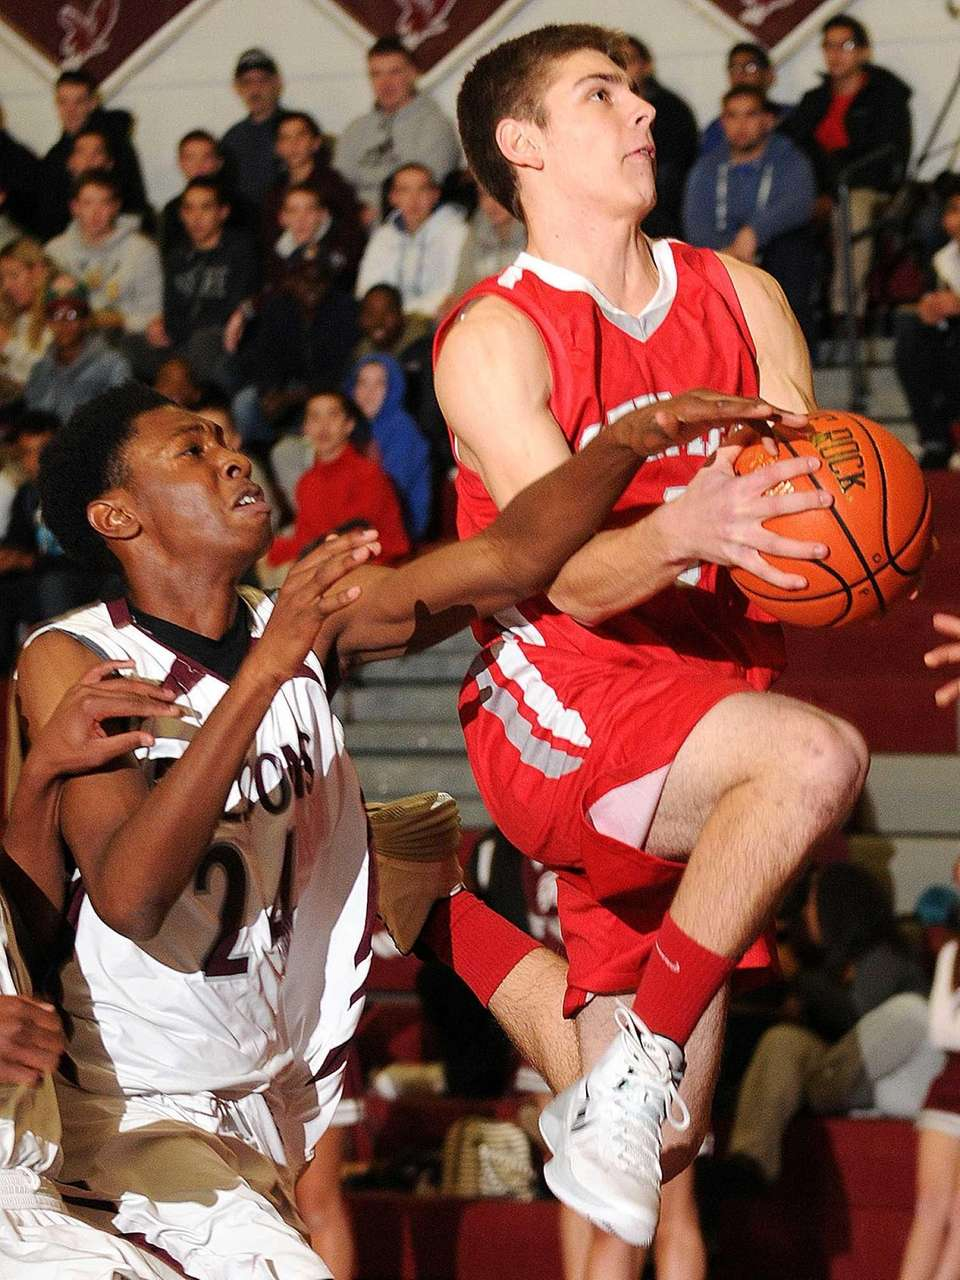 East Islip's Brandon MacMorris, right, draws a foul